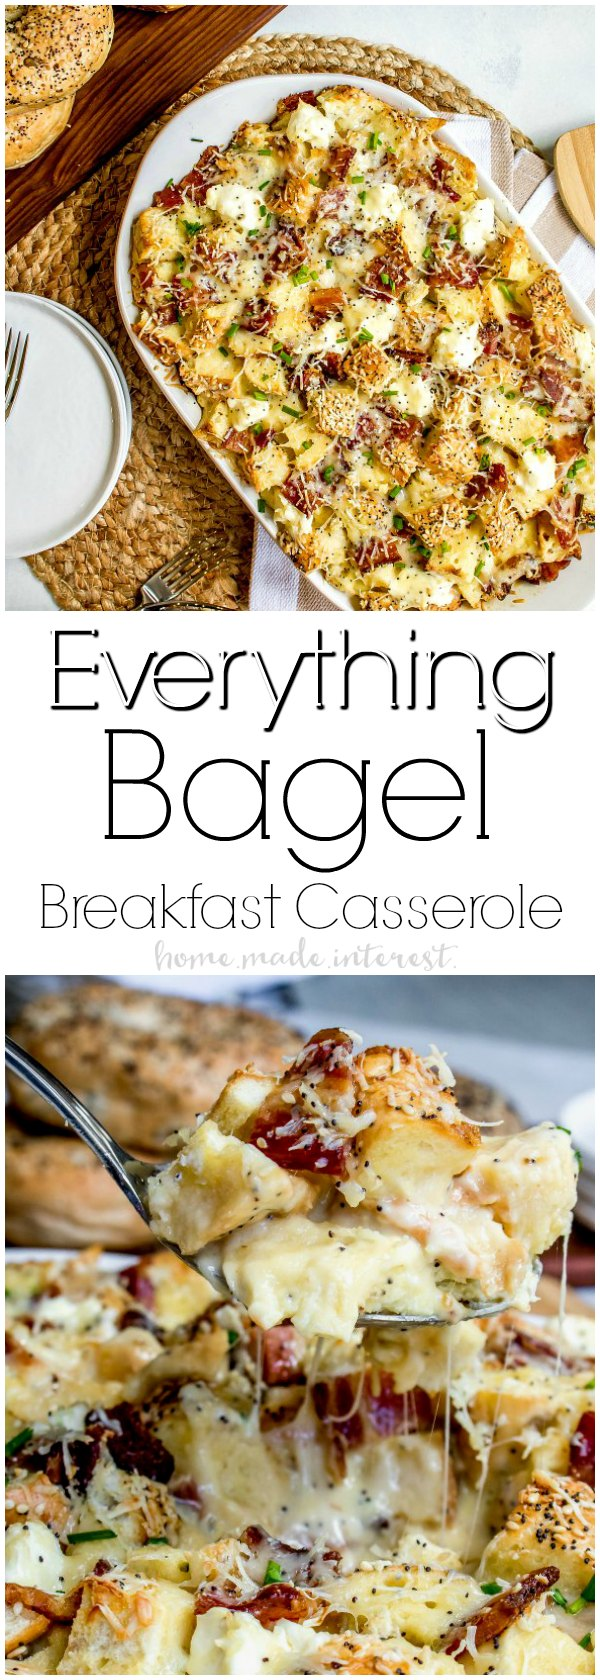 Everything Bagel Make Ahead Breakfast Casserole | This everything bagel make ahead breakfast casserole that is an easy brunch recipe for the holidays. This make ahead brunch recipe uses bagels, cheese, and bacon for a brunch recipe that everyone will love! Make this breakfast casserole for Mother's Day , Easter, Christmas, or New Year's brunch!